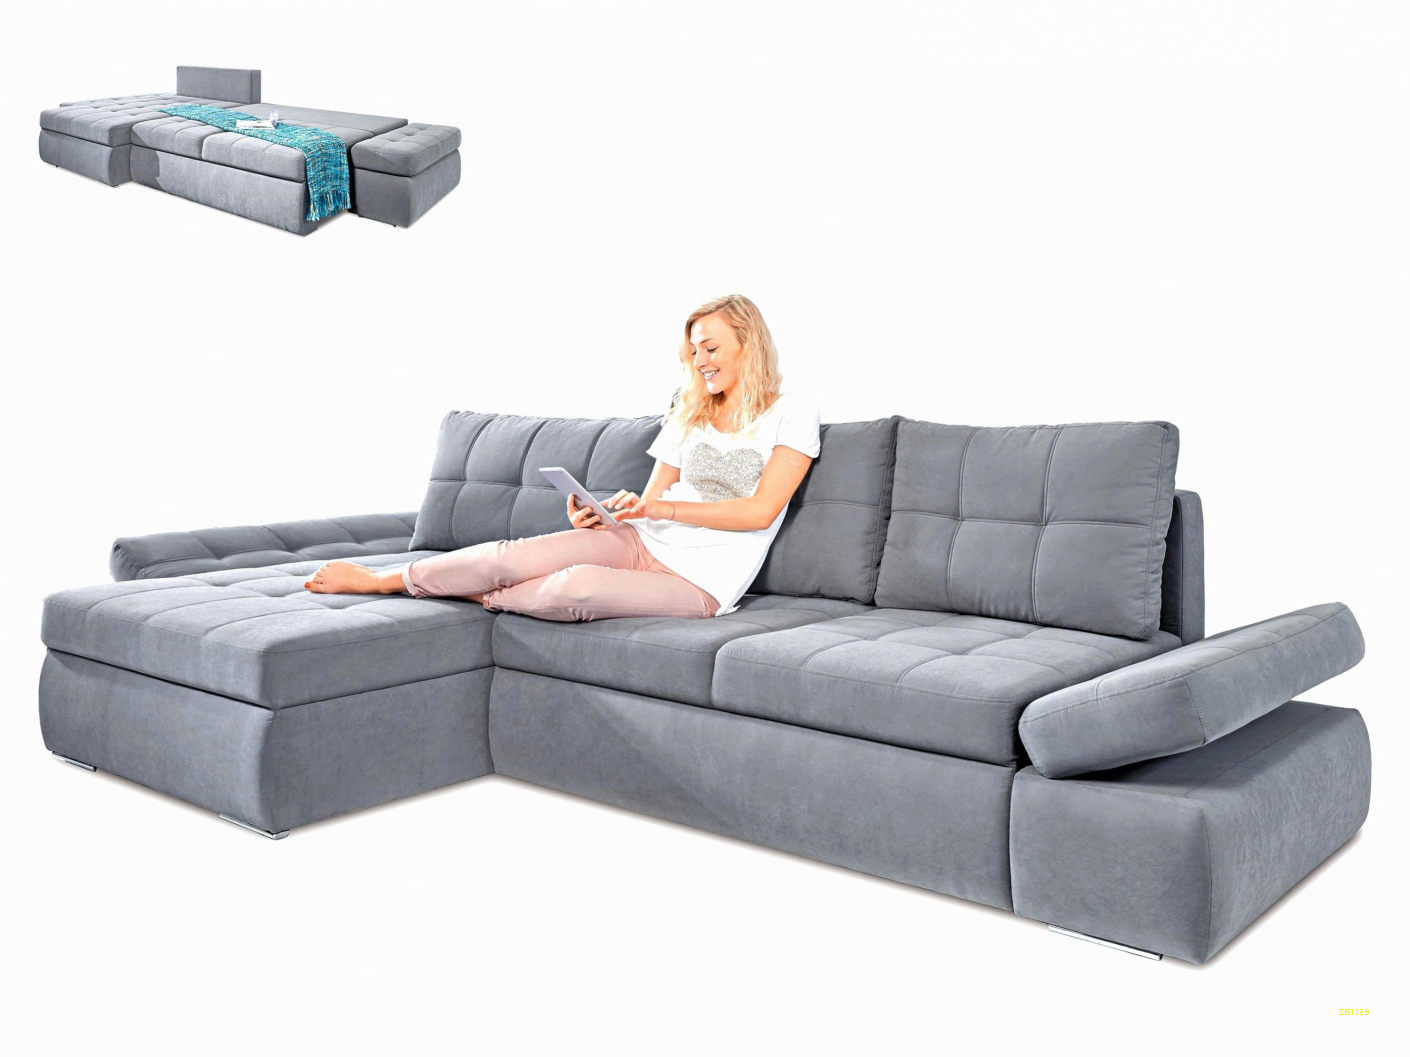 Sofa Cama Merkamueble Zwdg sofa Cama Merkamueble Lindo Blend Mantas De sofa Blendiberia